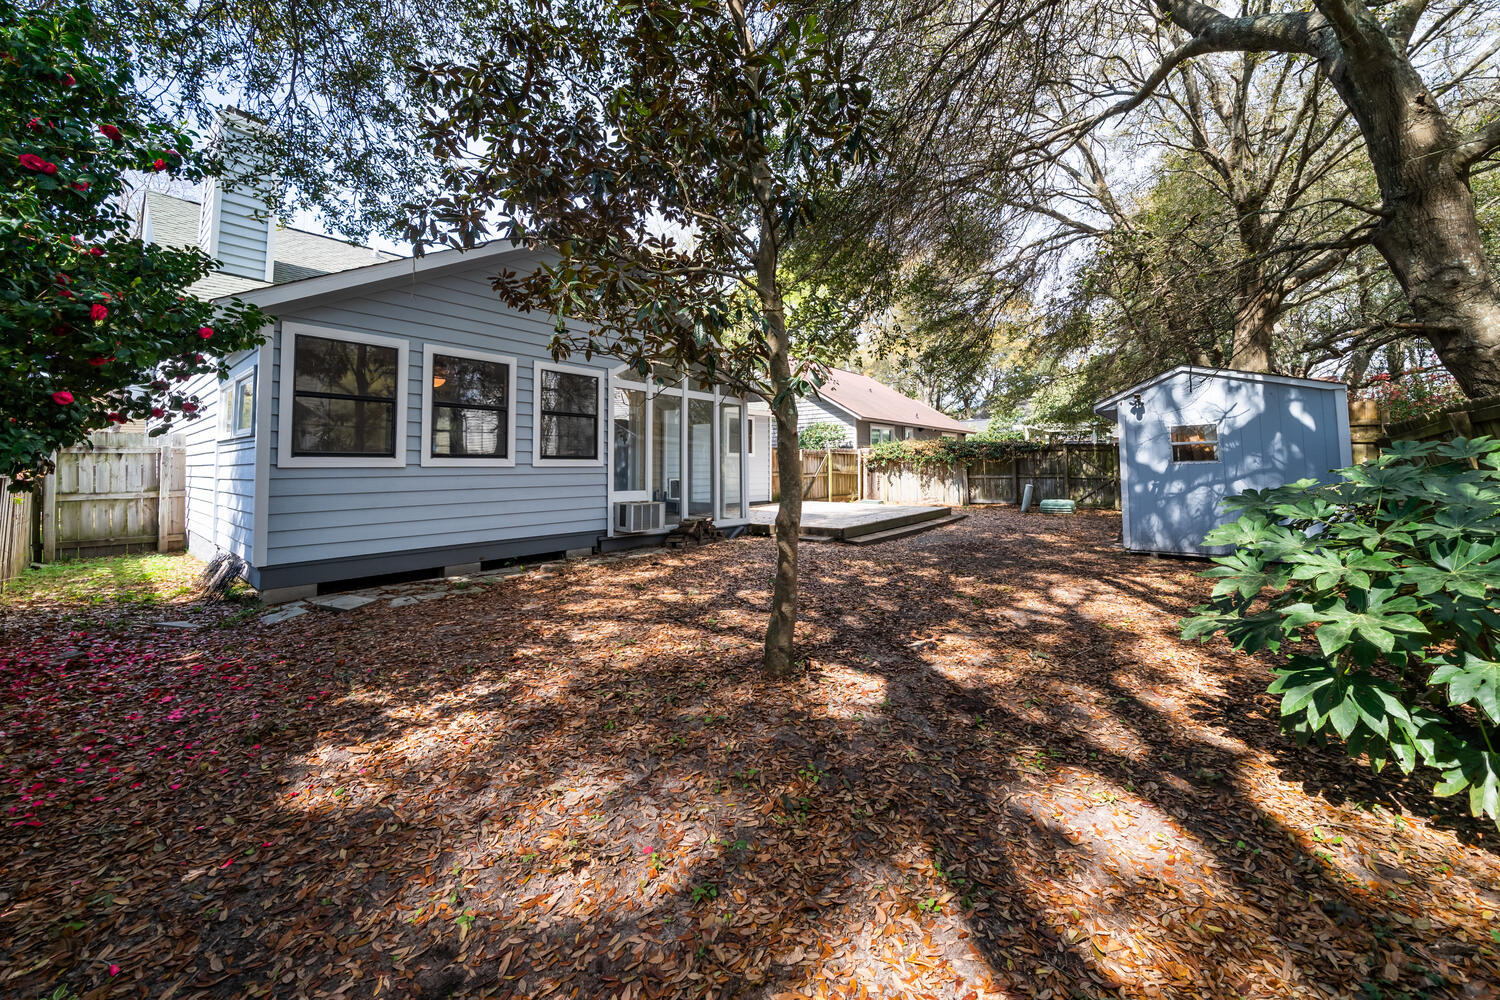 Pirates Cove Homes For Sale - 1510 Privateer, Mount Pleasant, SC - 0